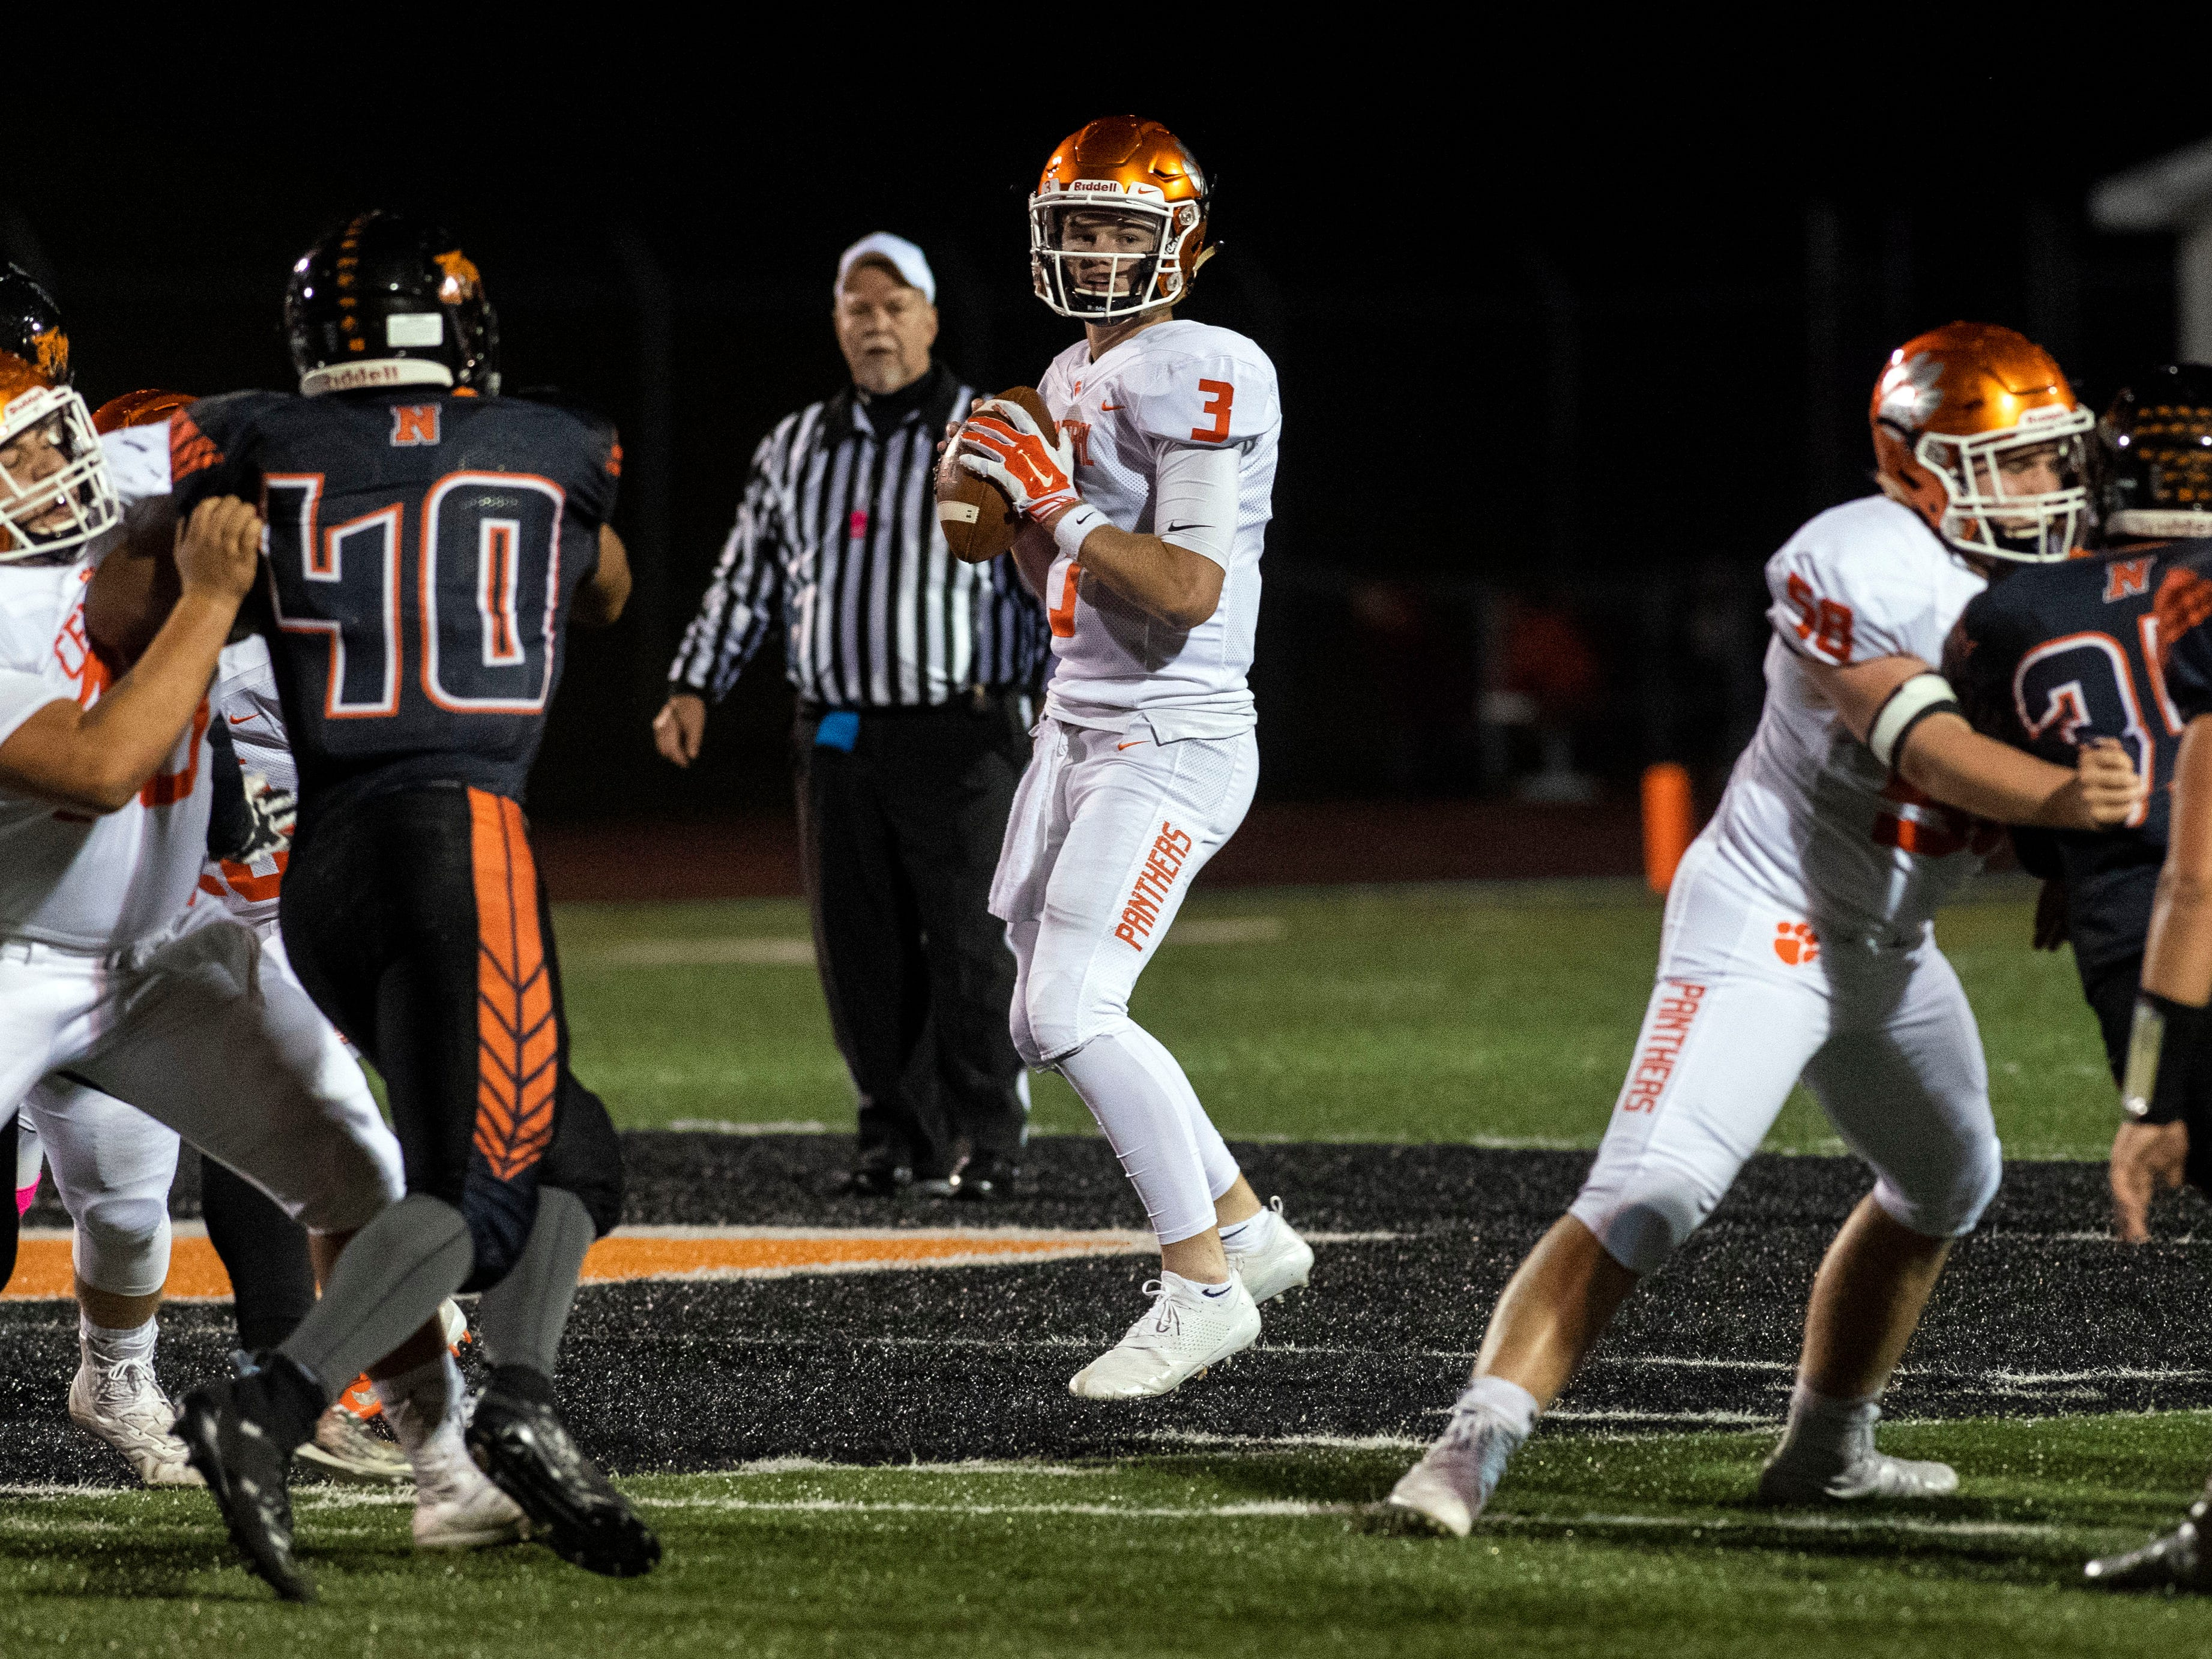 Central York quarterback Cade Pribula (3) drops back to pass during a YAIAA Division I football game at Northeastern High School on Friday, Oct. 12, 2018. The Central York Panthers beat the Northeastern Bobcats, 44-7.